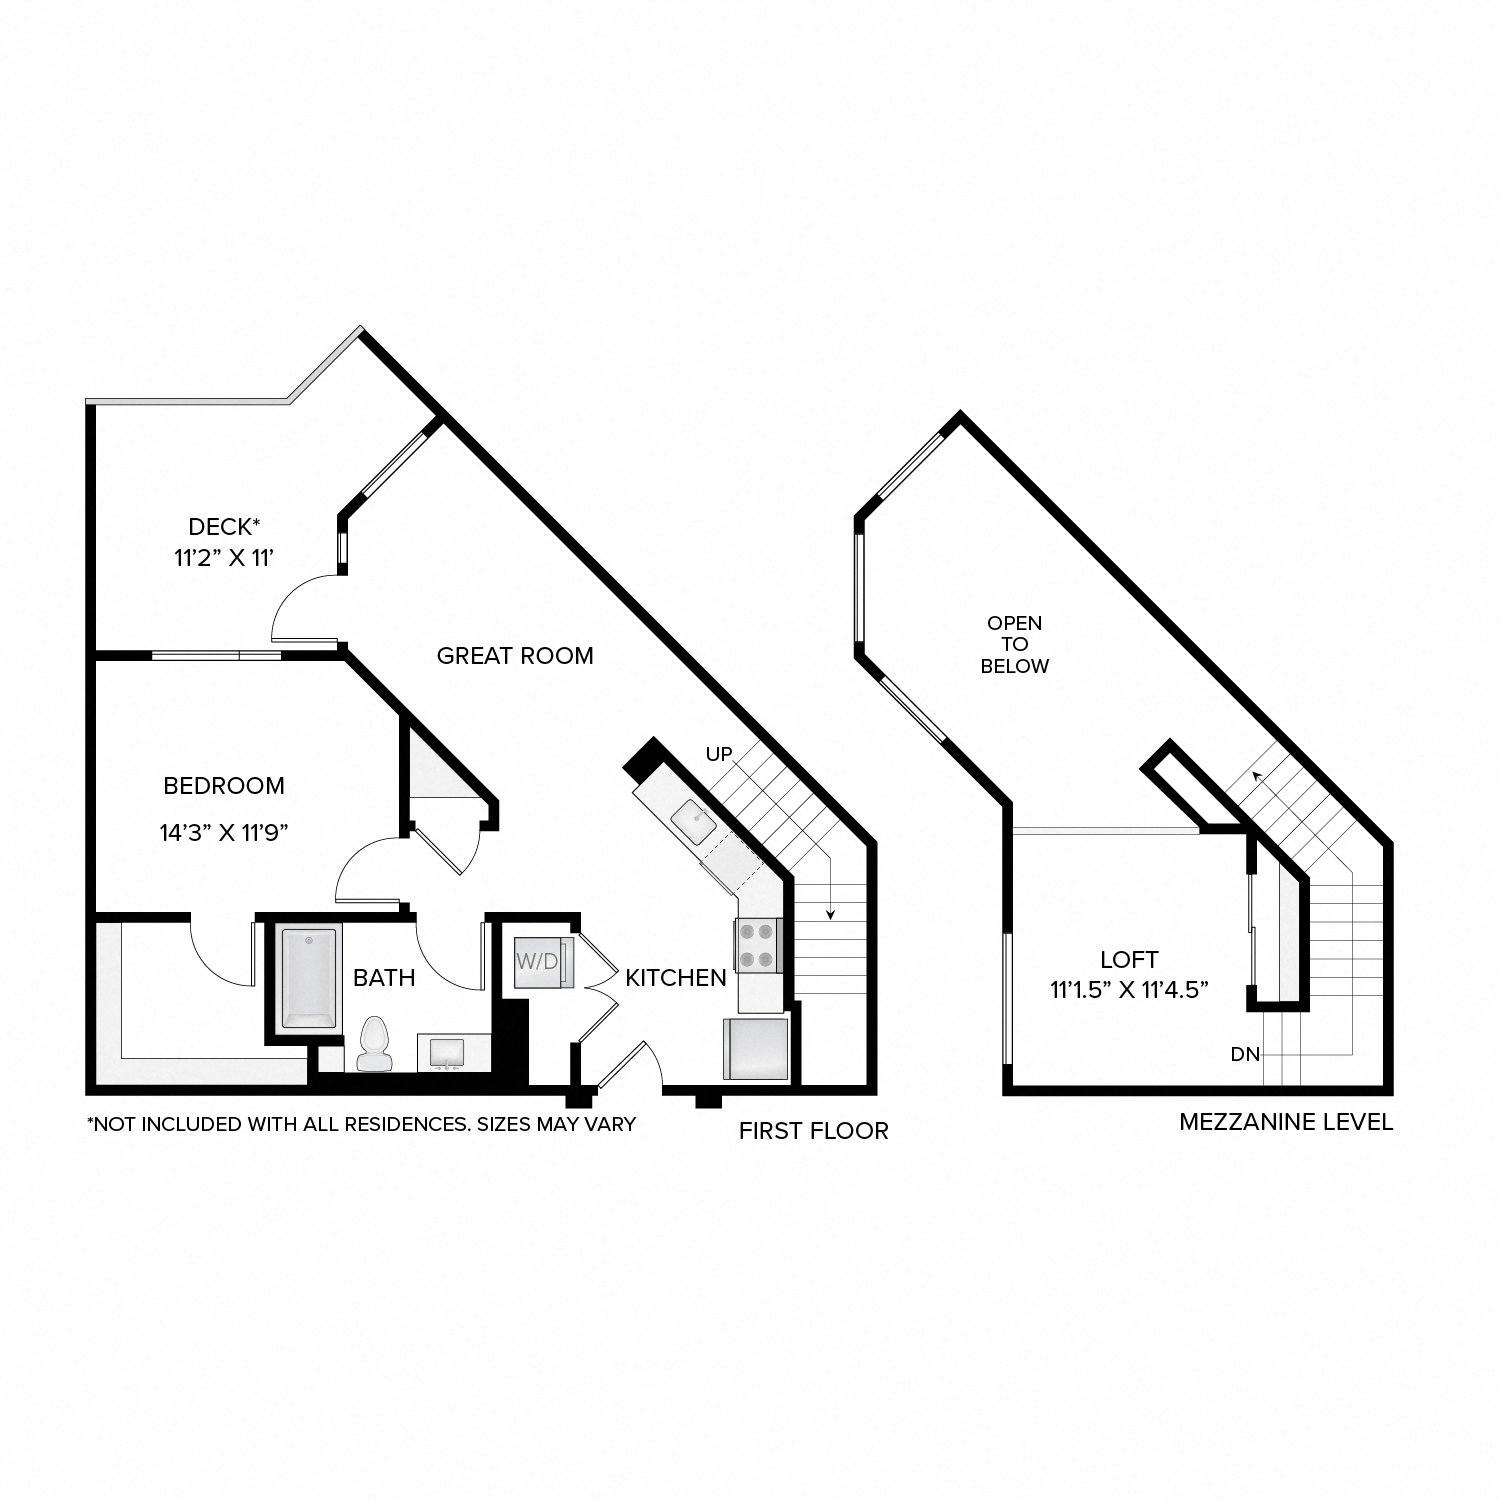 Diagram of the Jackson Loft floor plan. One bedroom, one bathroom, an open kitchen and living area, a loft, washer dryer, and in select residences, a deck.